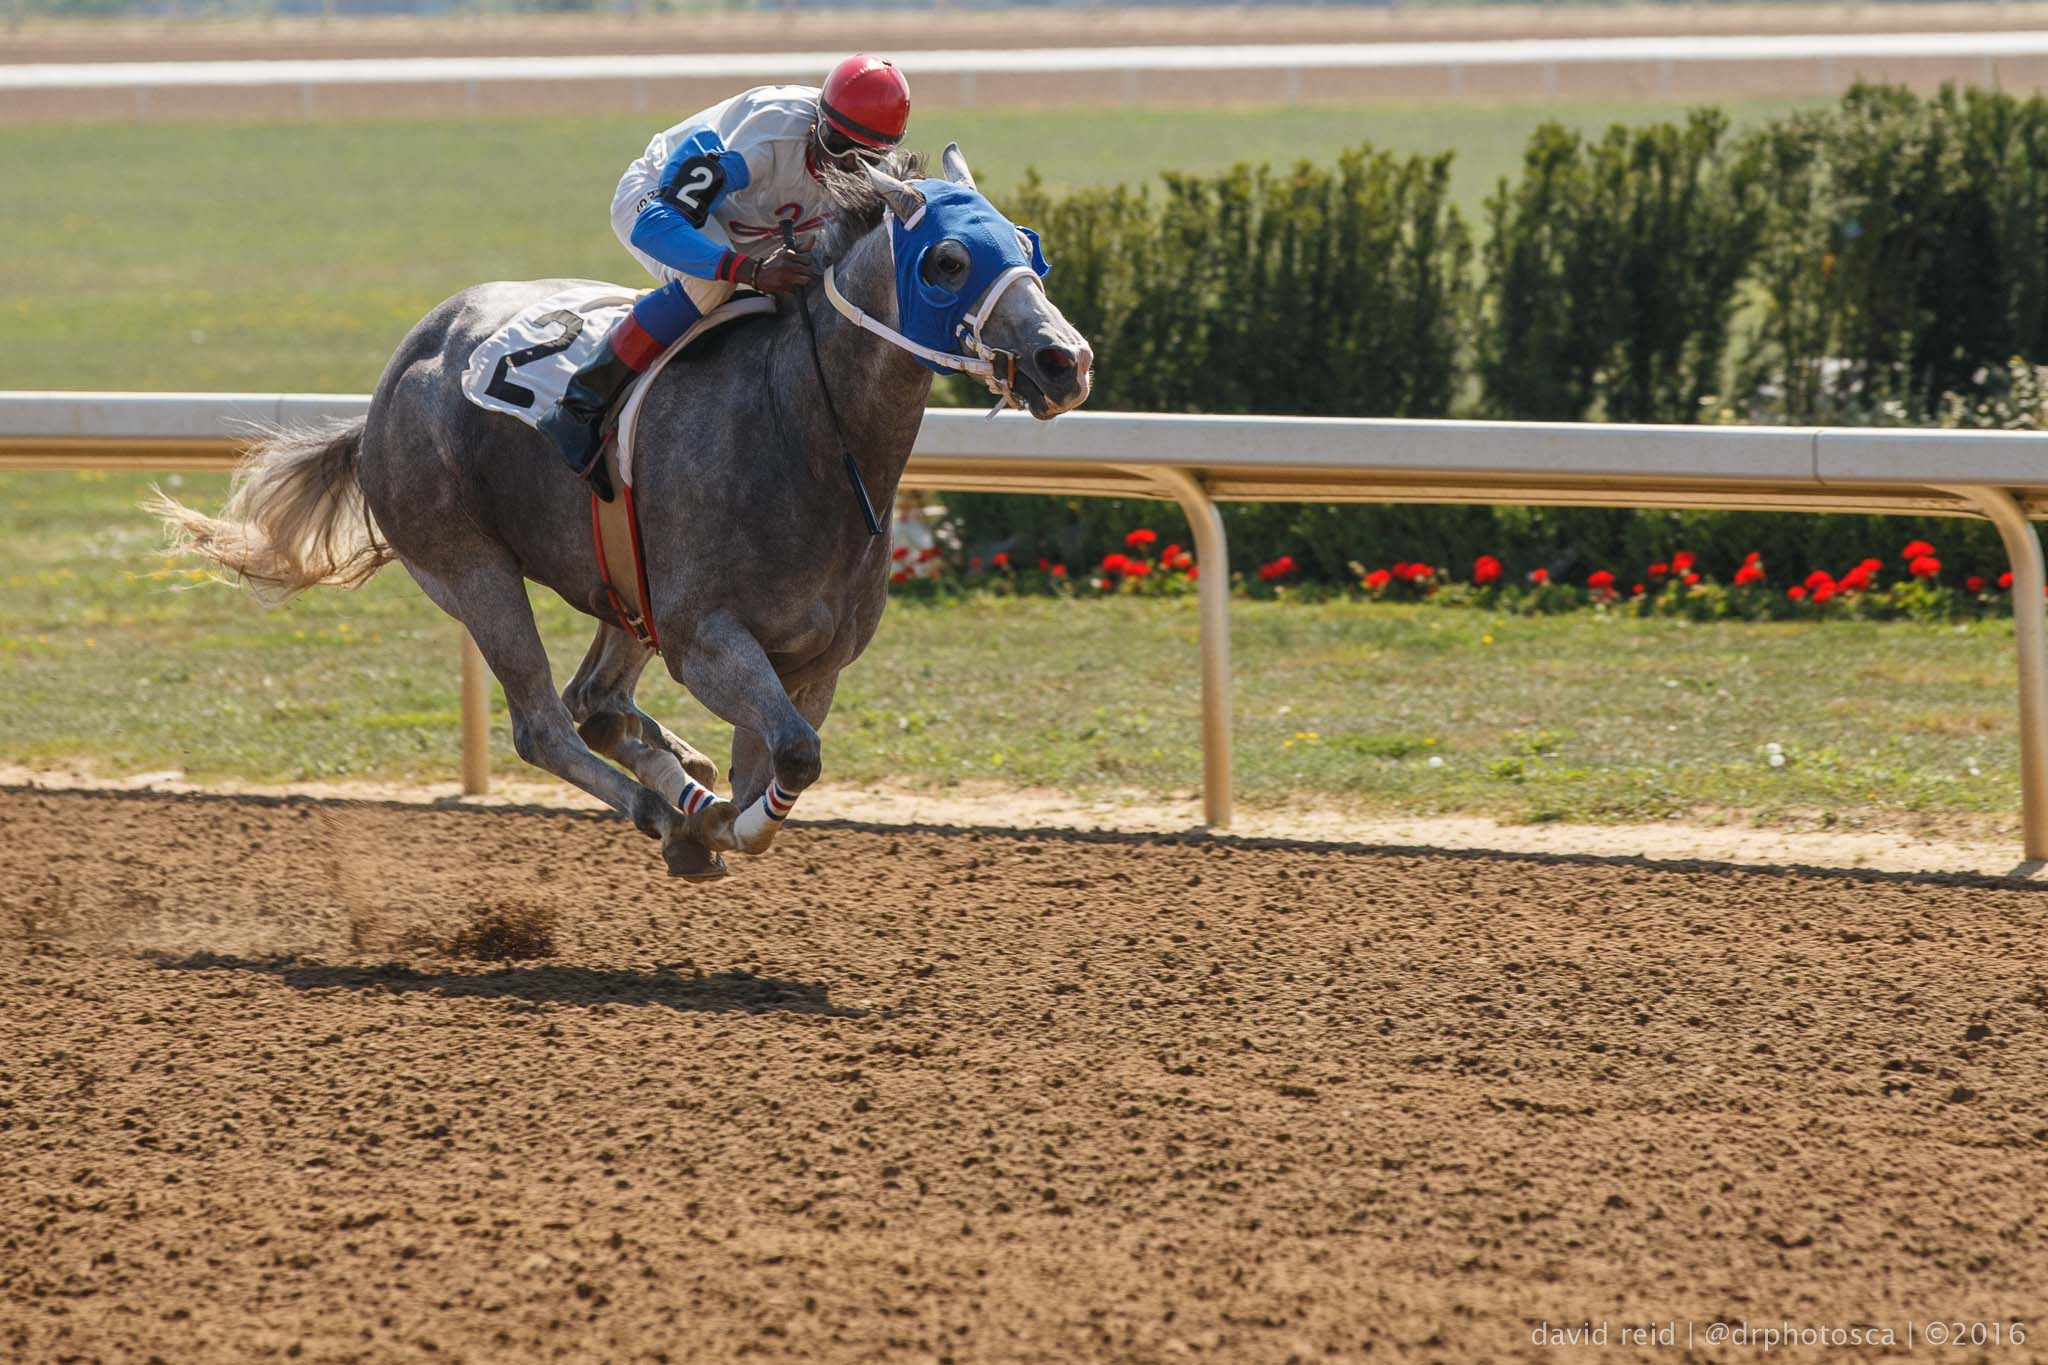 Winning photo from Ajax Downs